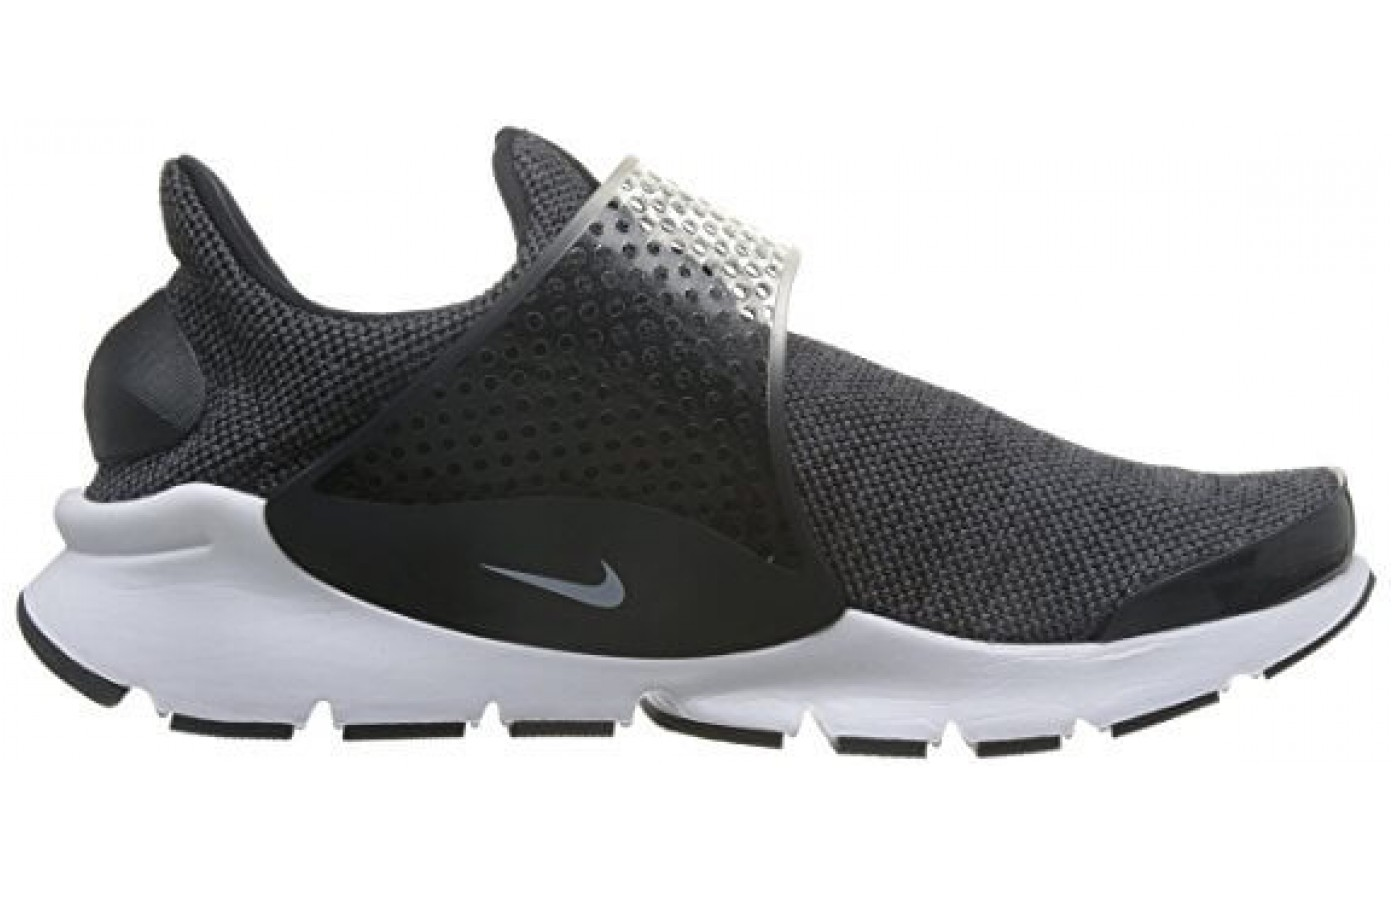 The Nike Sock Dart SE Premium side view